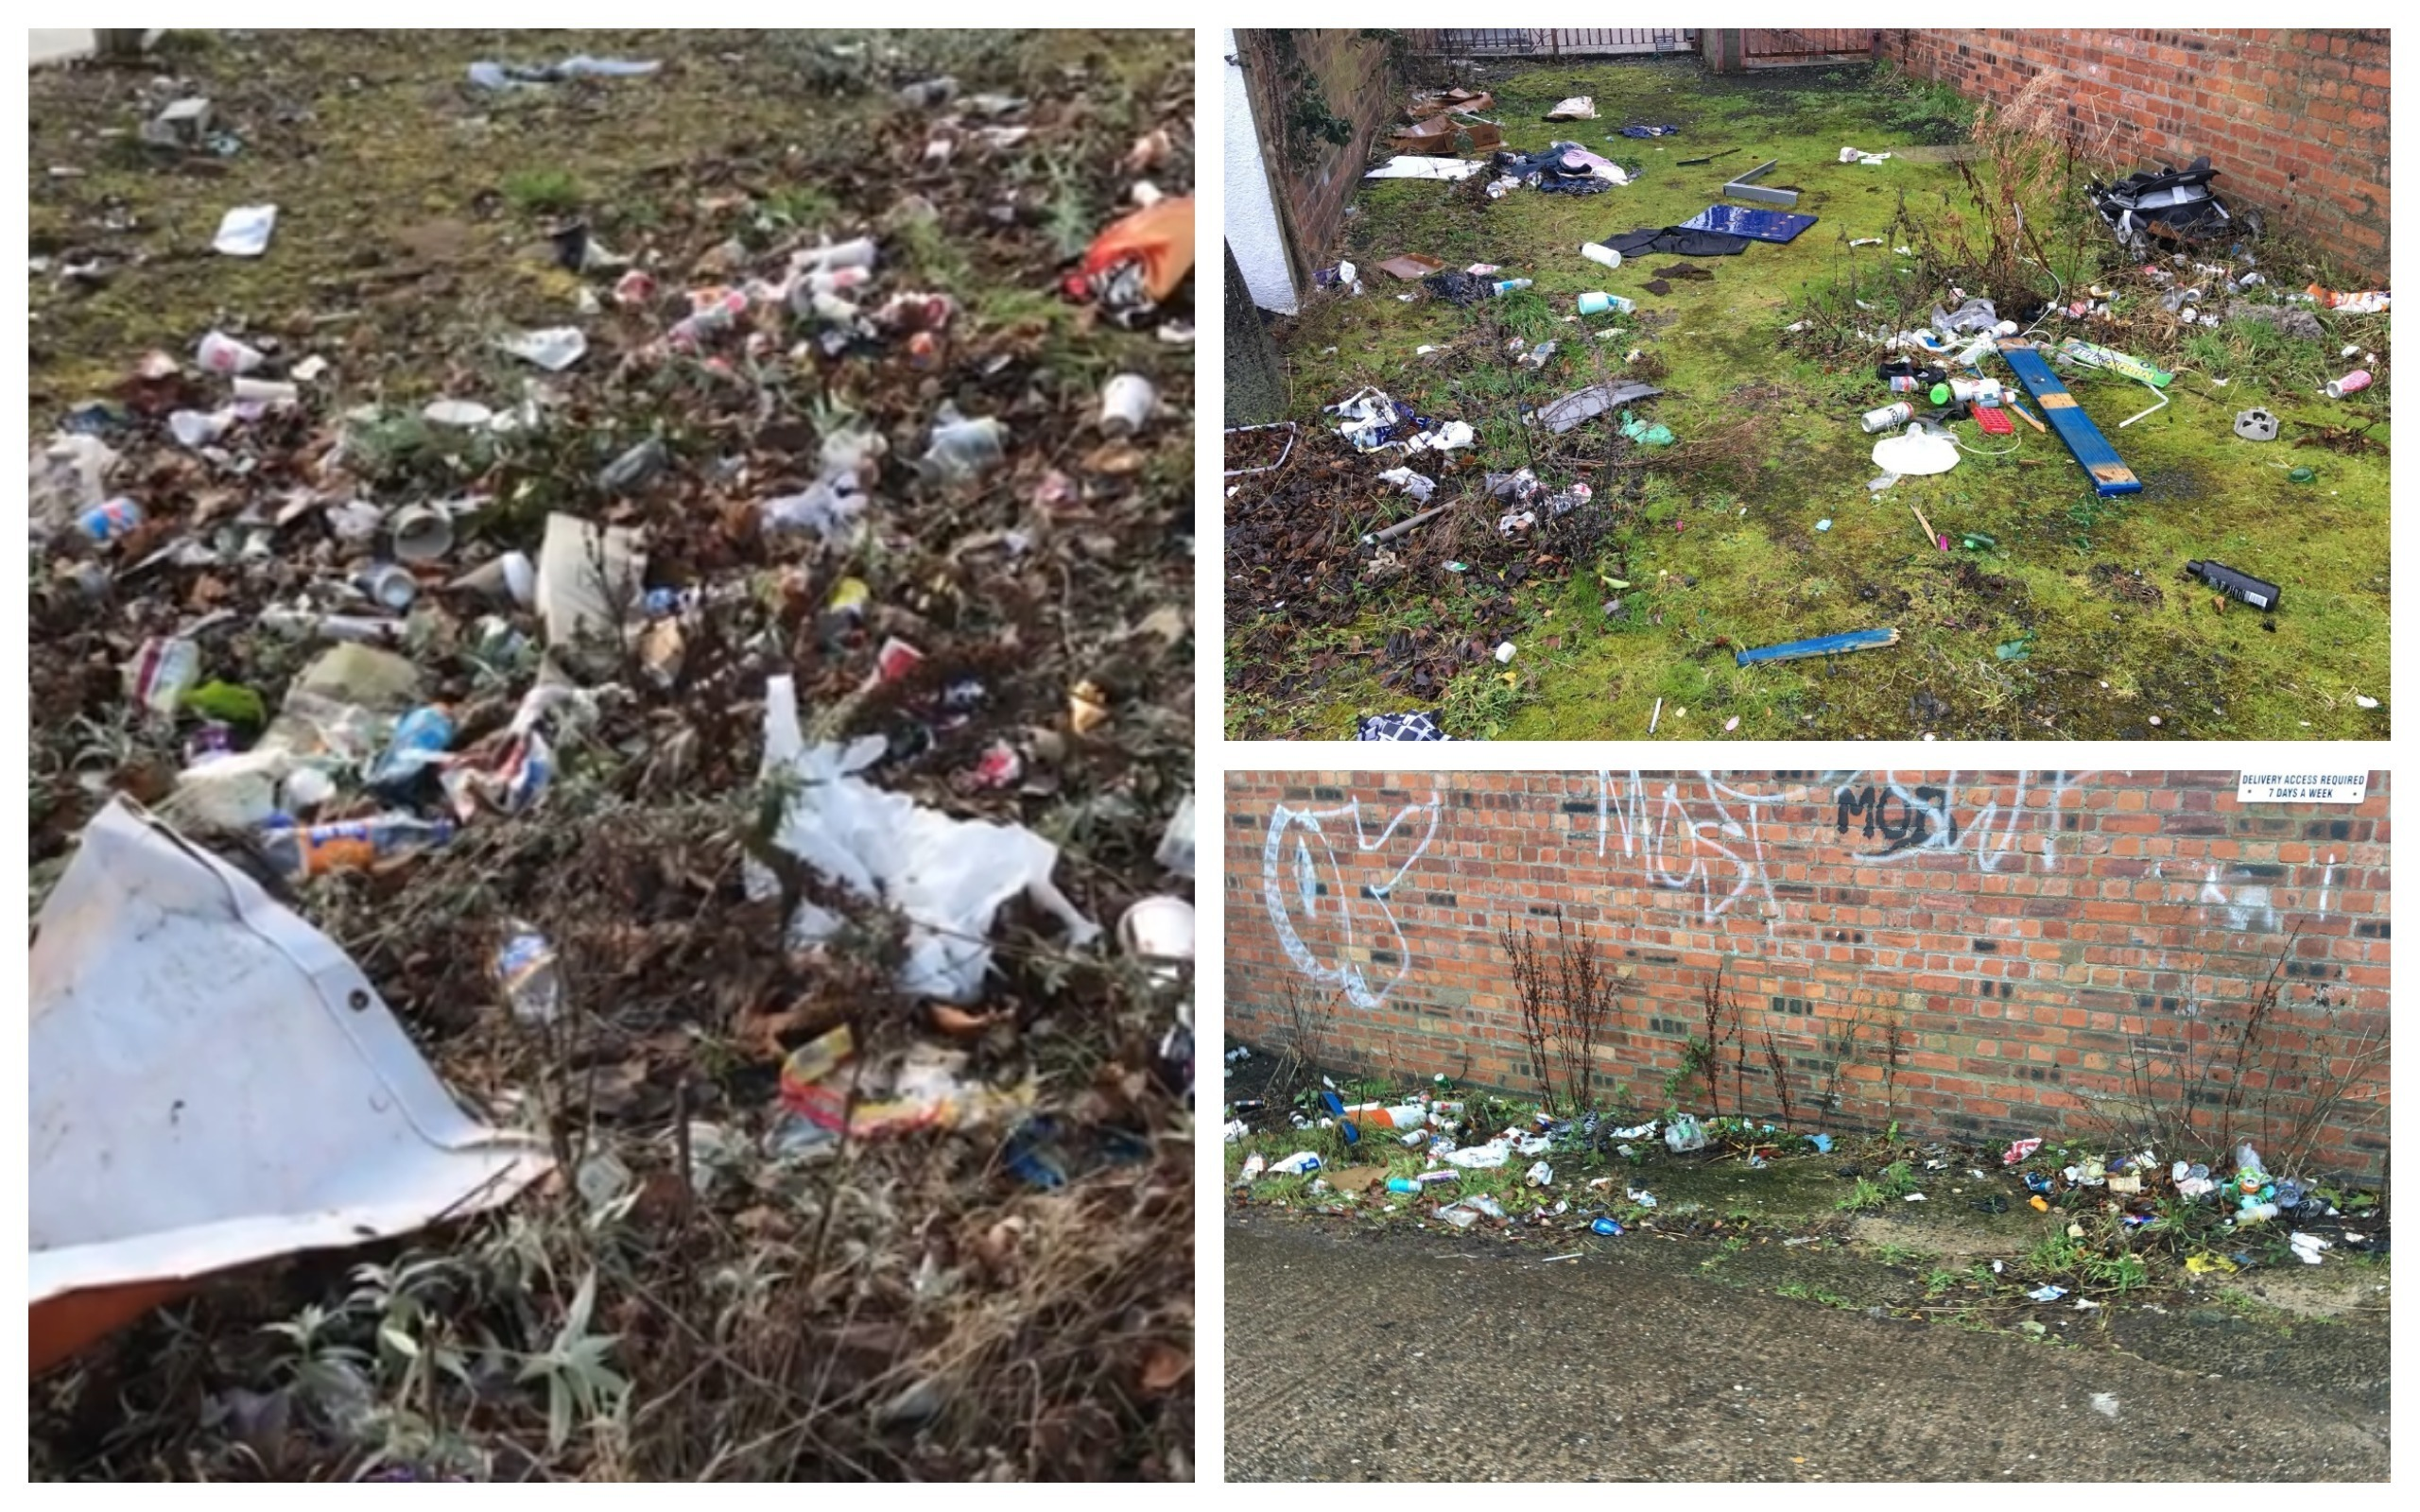 The video showed rubbish on Lochee High Street (left) and right, more elsewhere on the route